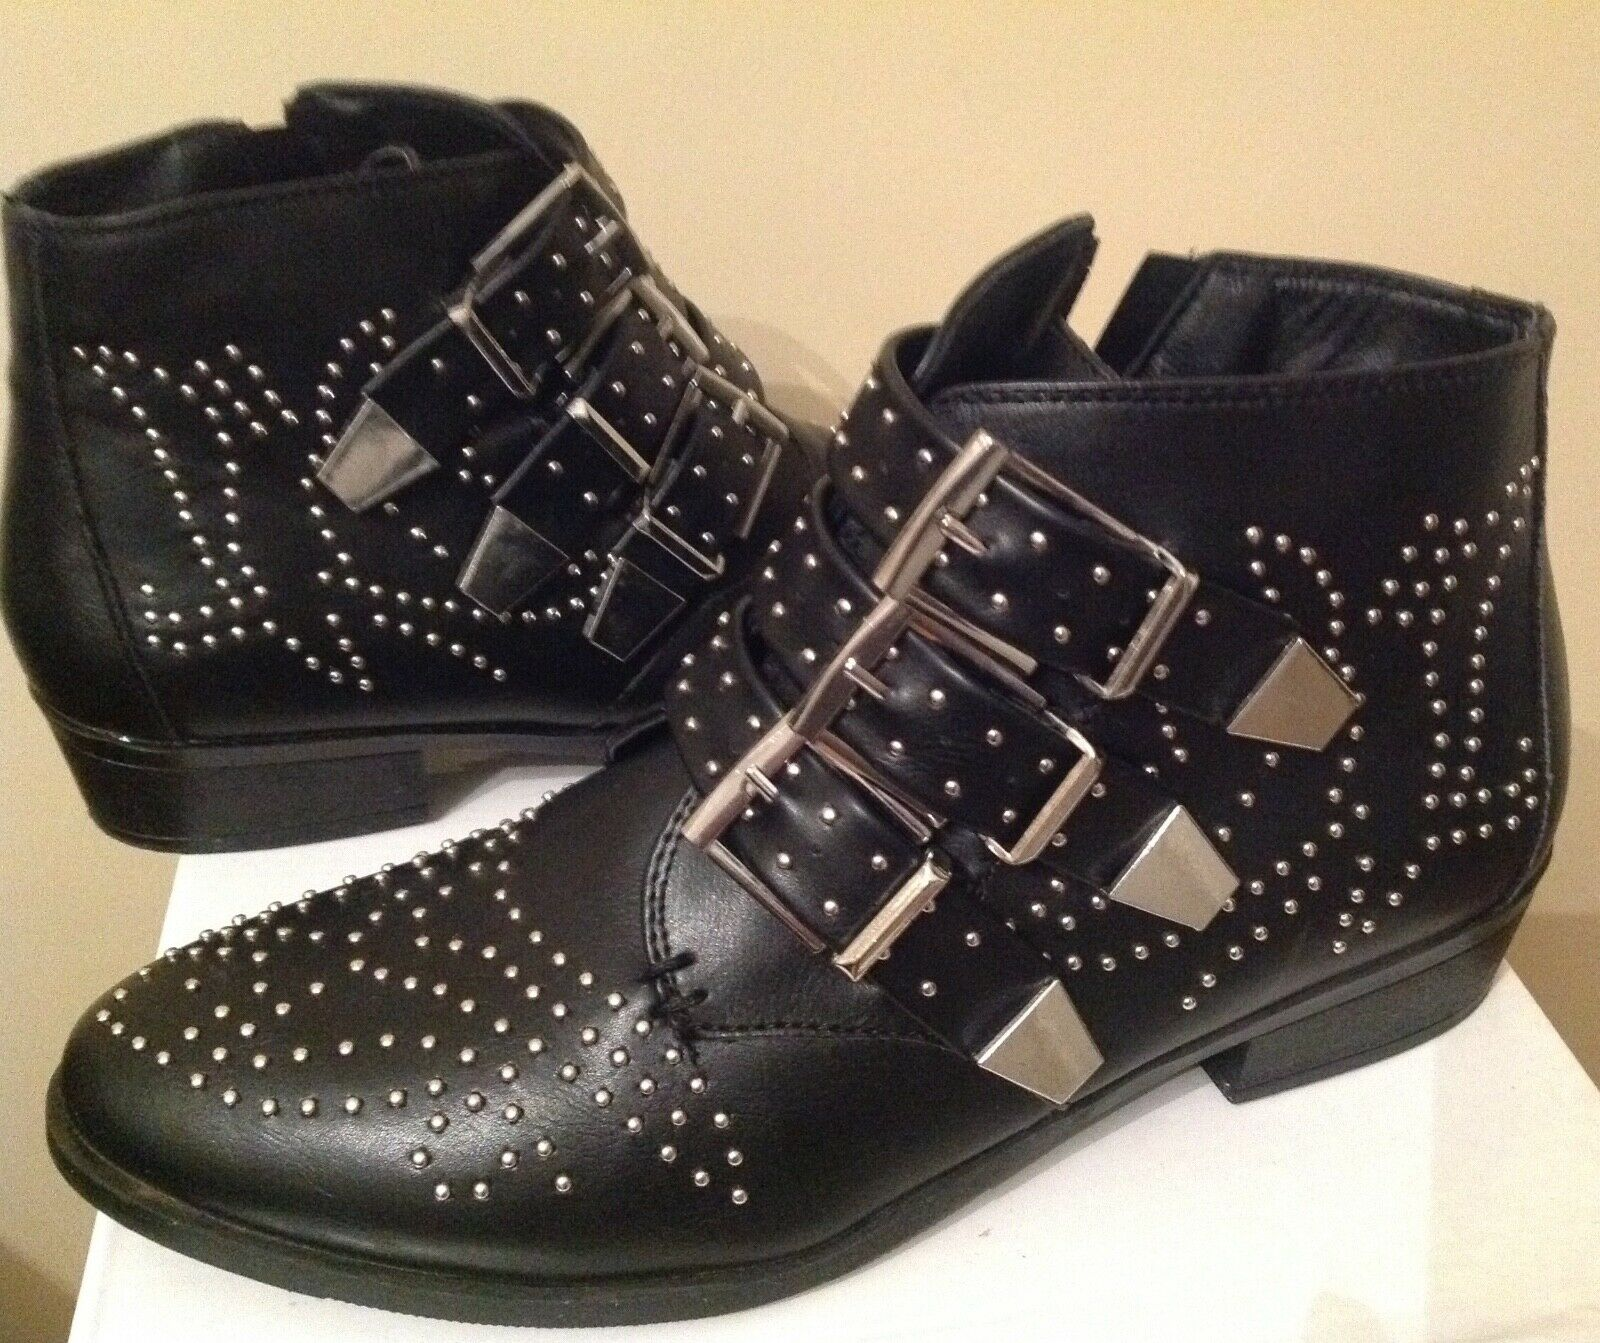 Black Beaded Ankle Boots with Buckle Detail, UK Size 6 (EUR 39)